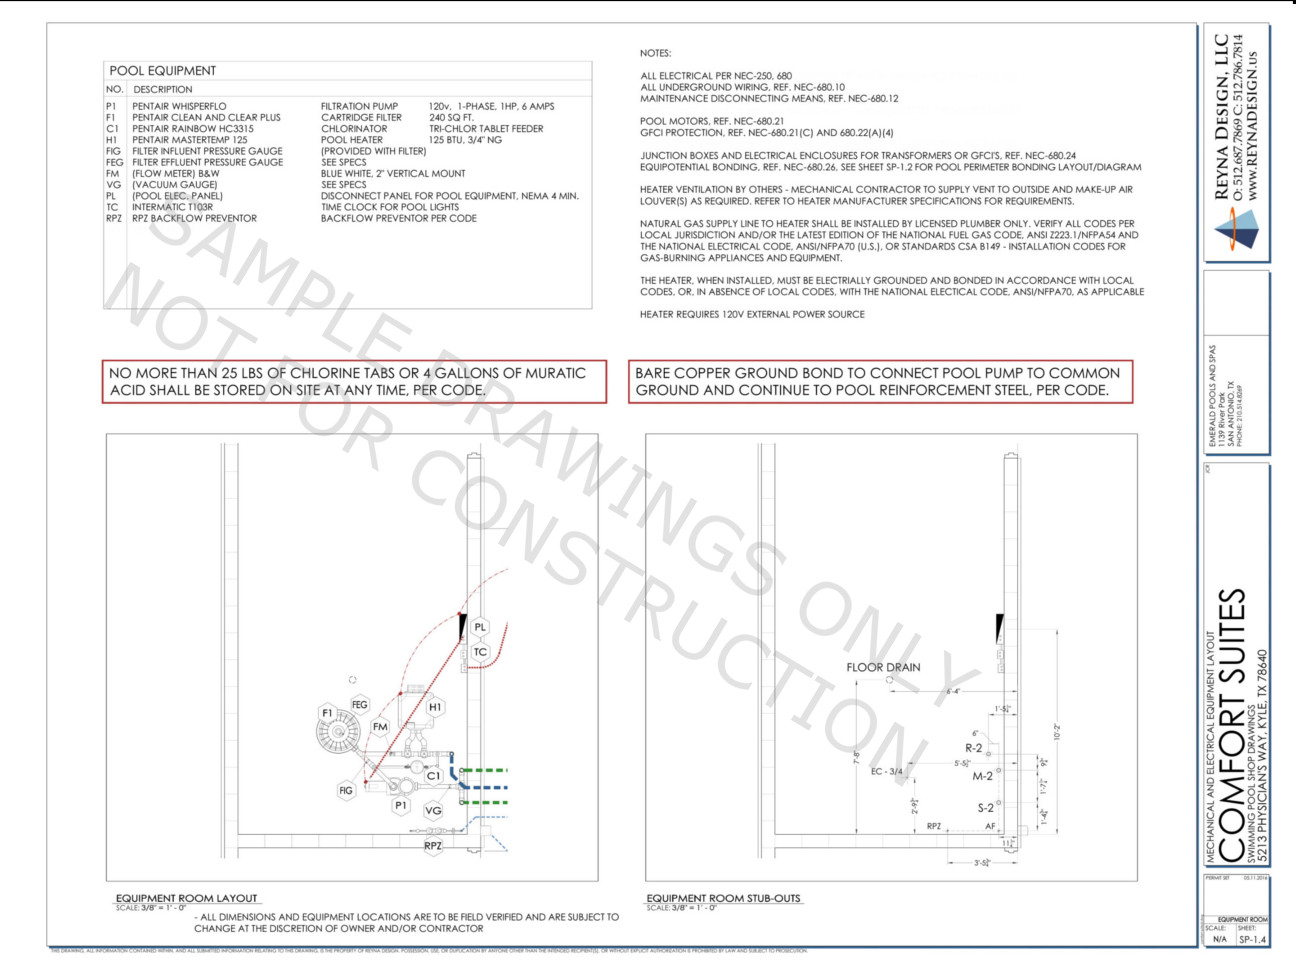 Pool Equipment Room Diagram Schematic Diagrams Filtration System Reyna Design